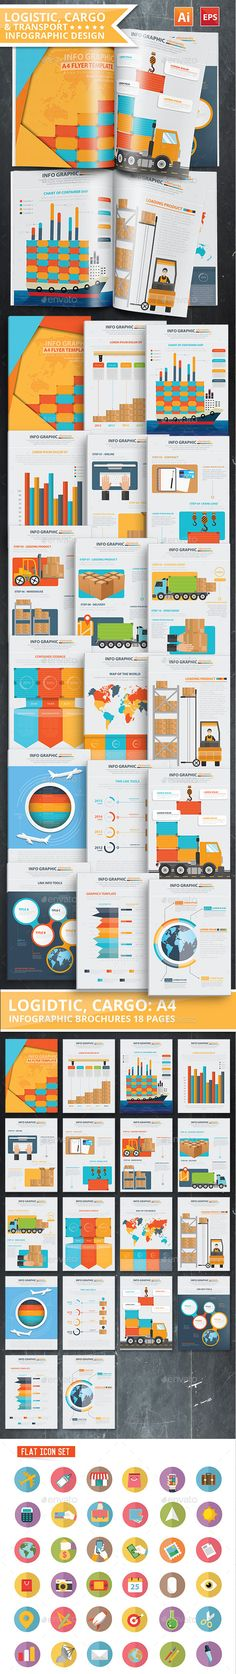 Logistic & Transport Infographic Design 18 Pages Template Vector EPS, AI #design Download: http://graphicriver.net/item/logistic-transport-infographic-design-18-pages/13235226?ref=ksioks